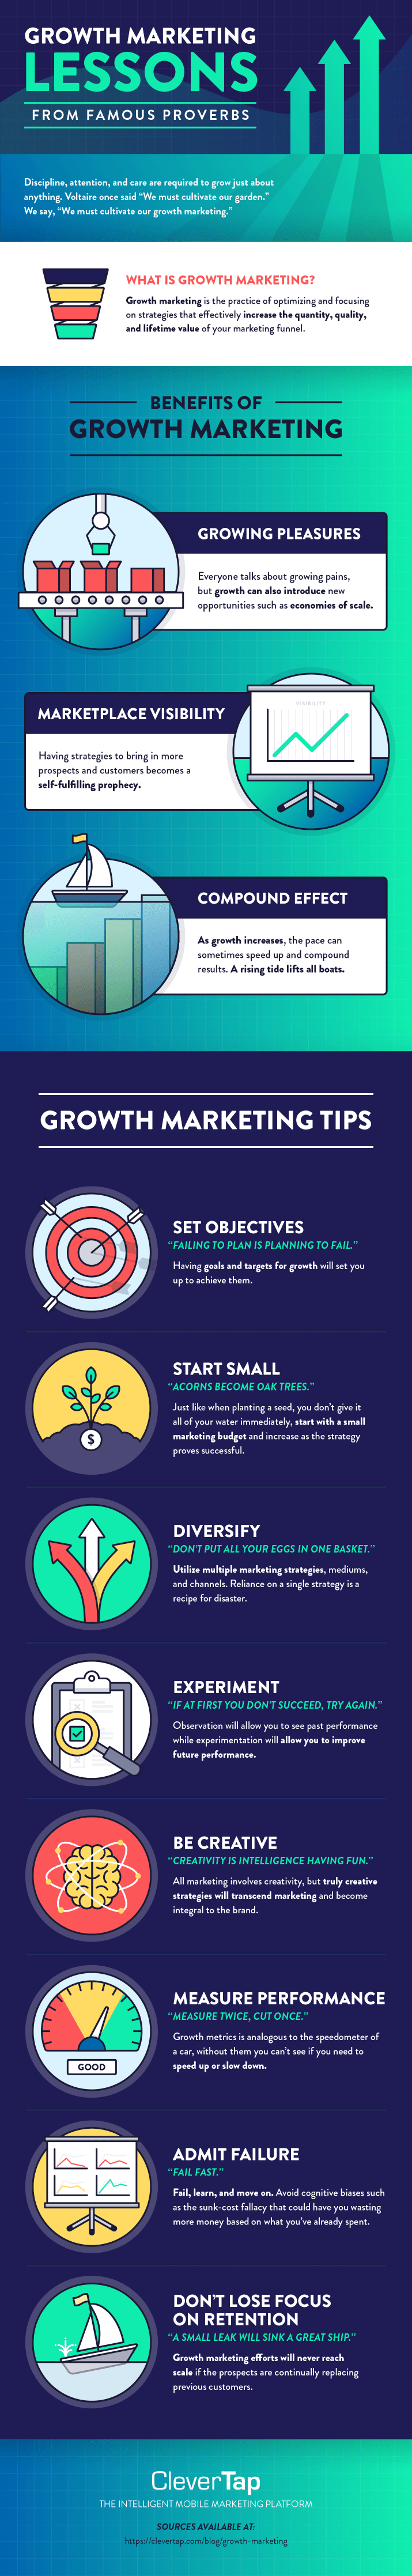 How to Use Growth Marketing